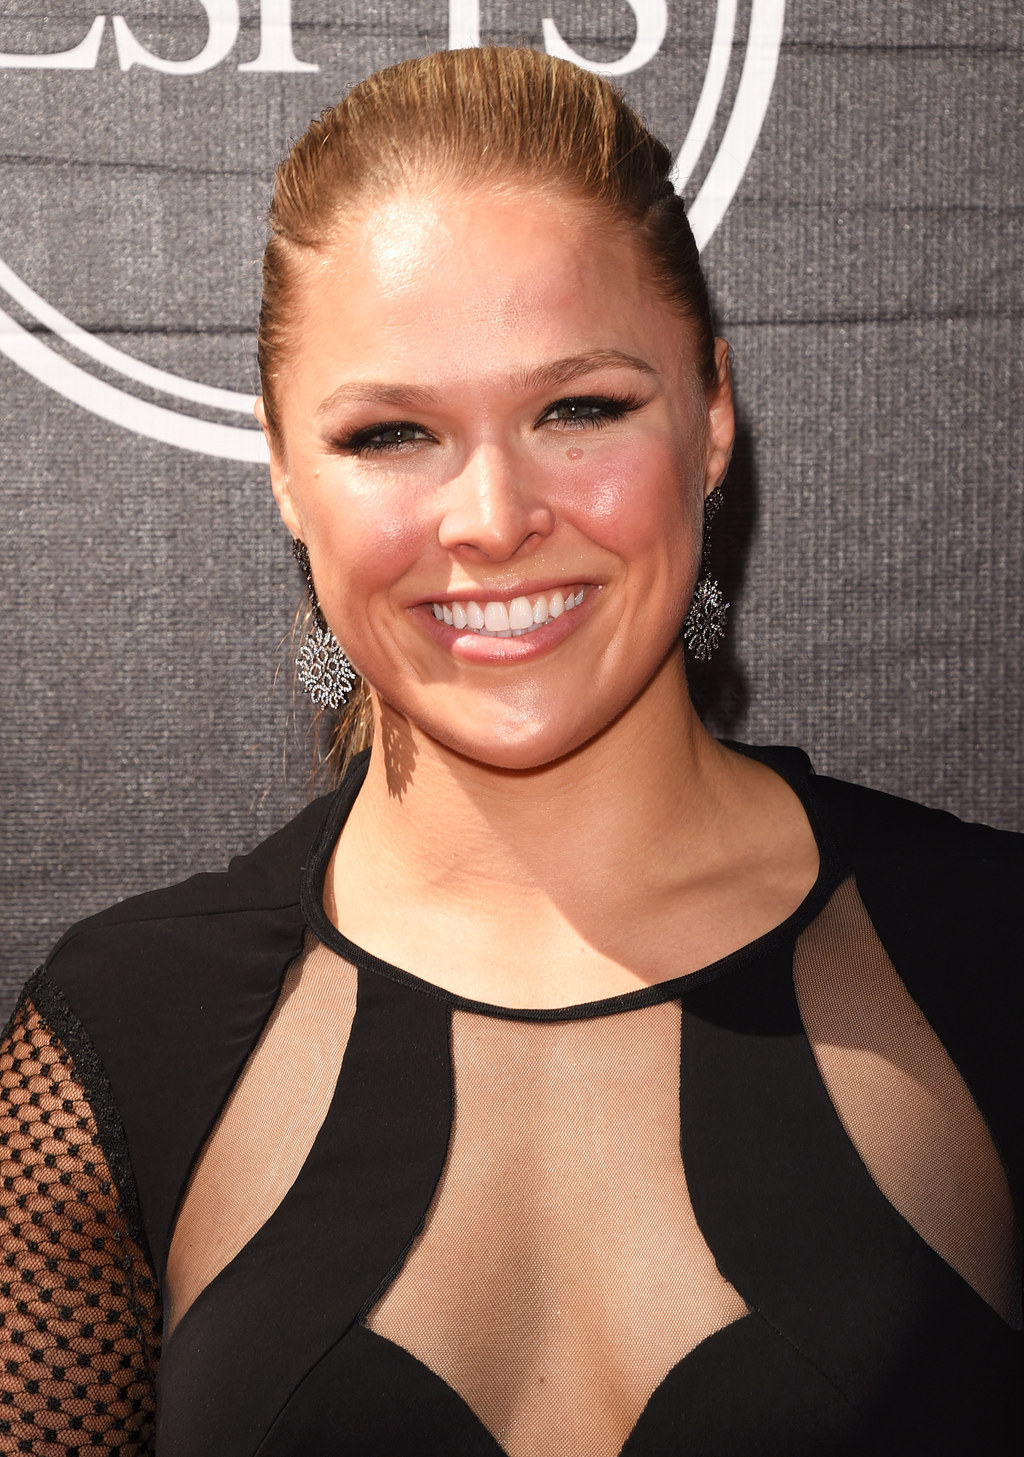 Ronda Rousey Just Destroyed Floyd Mayweather At The ESPYs